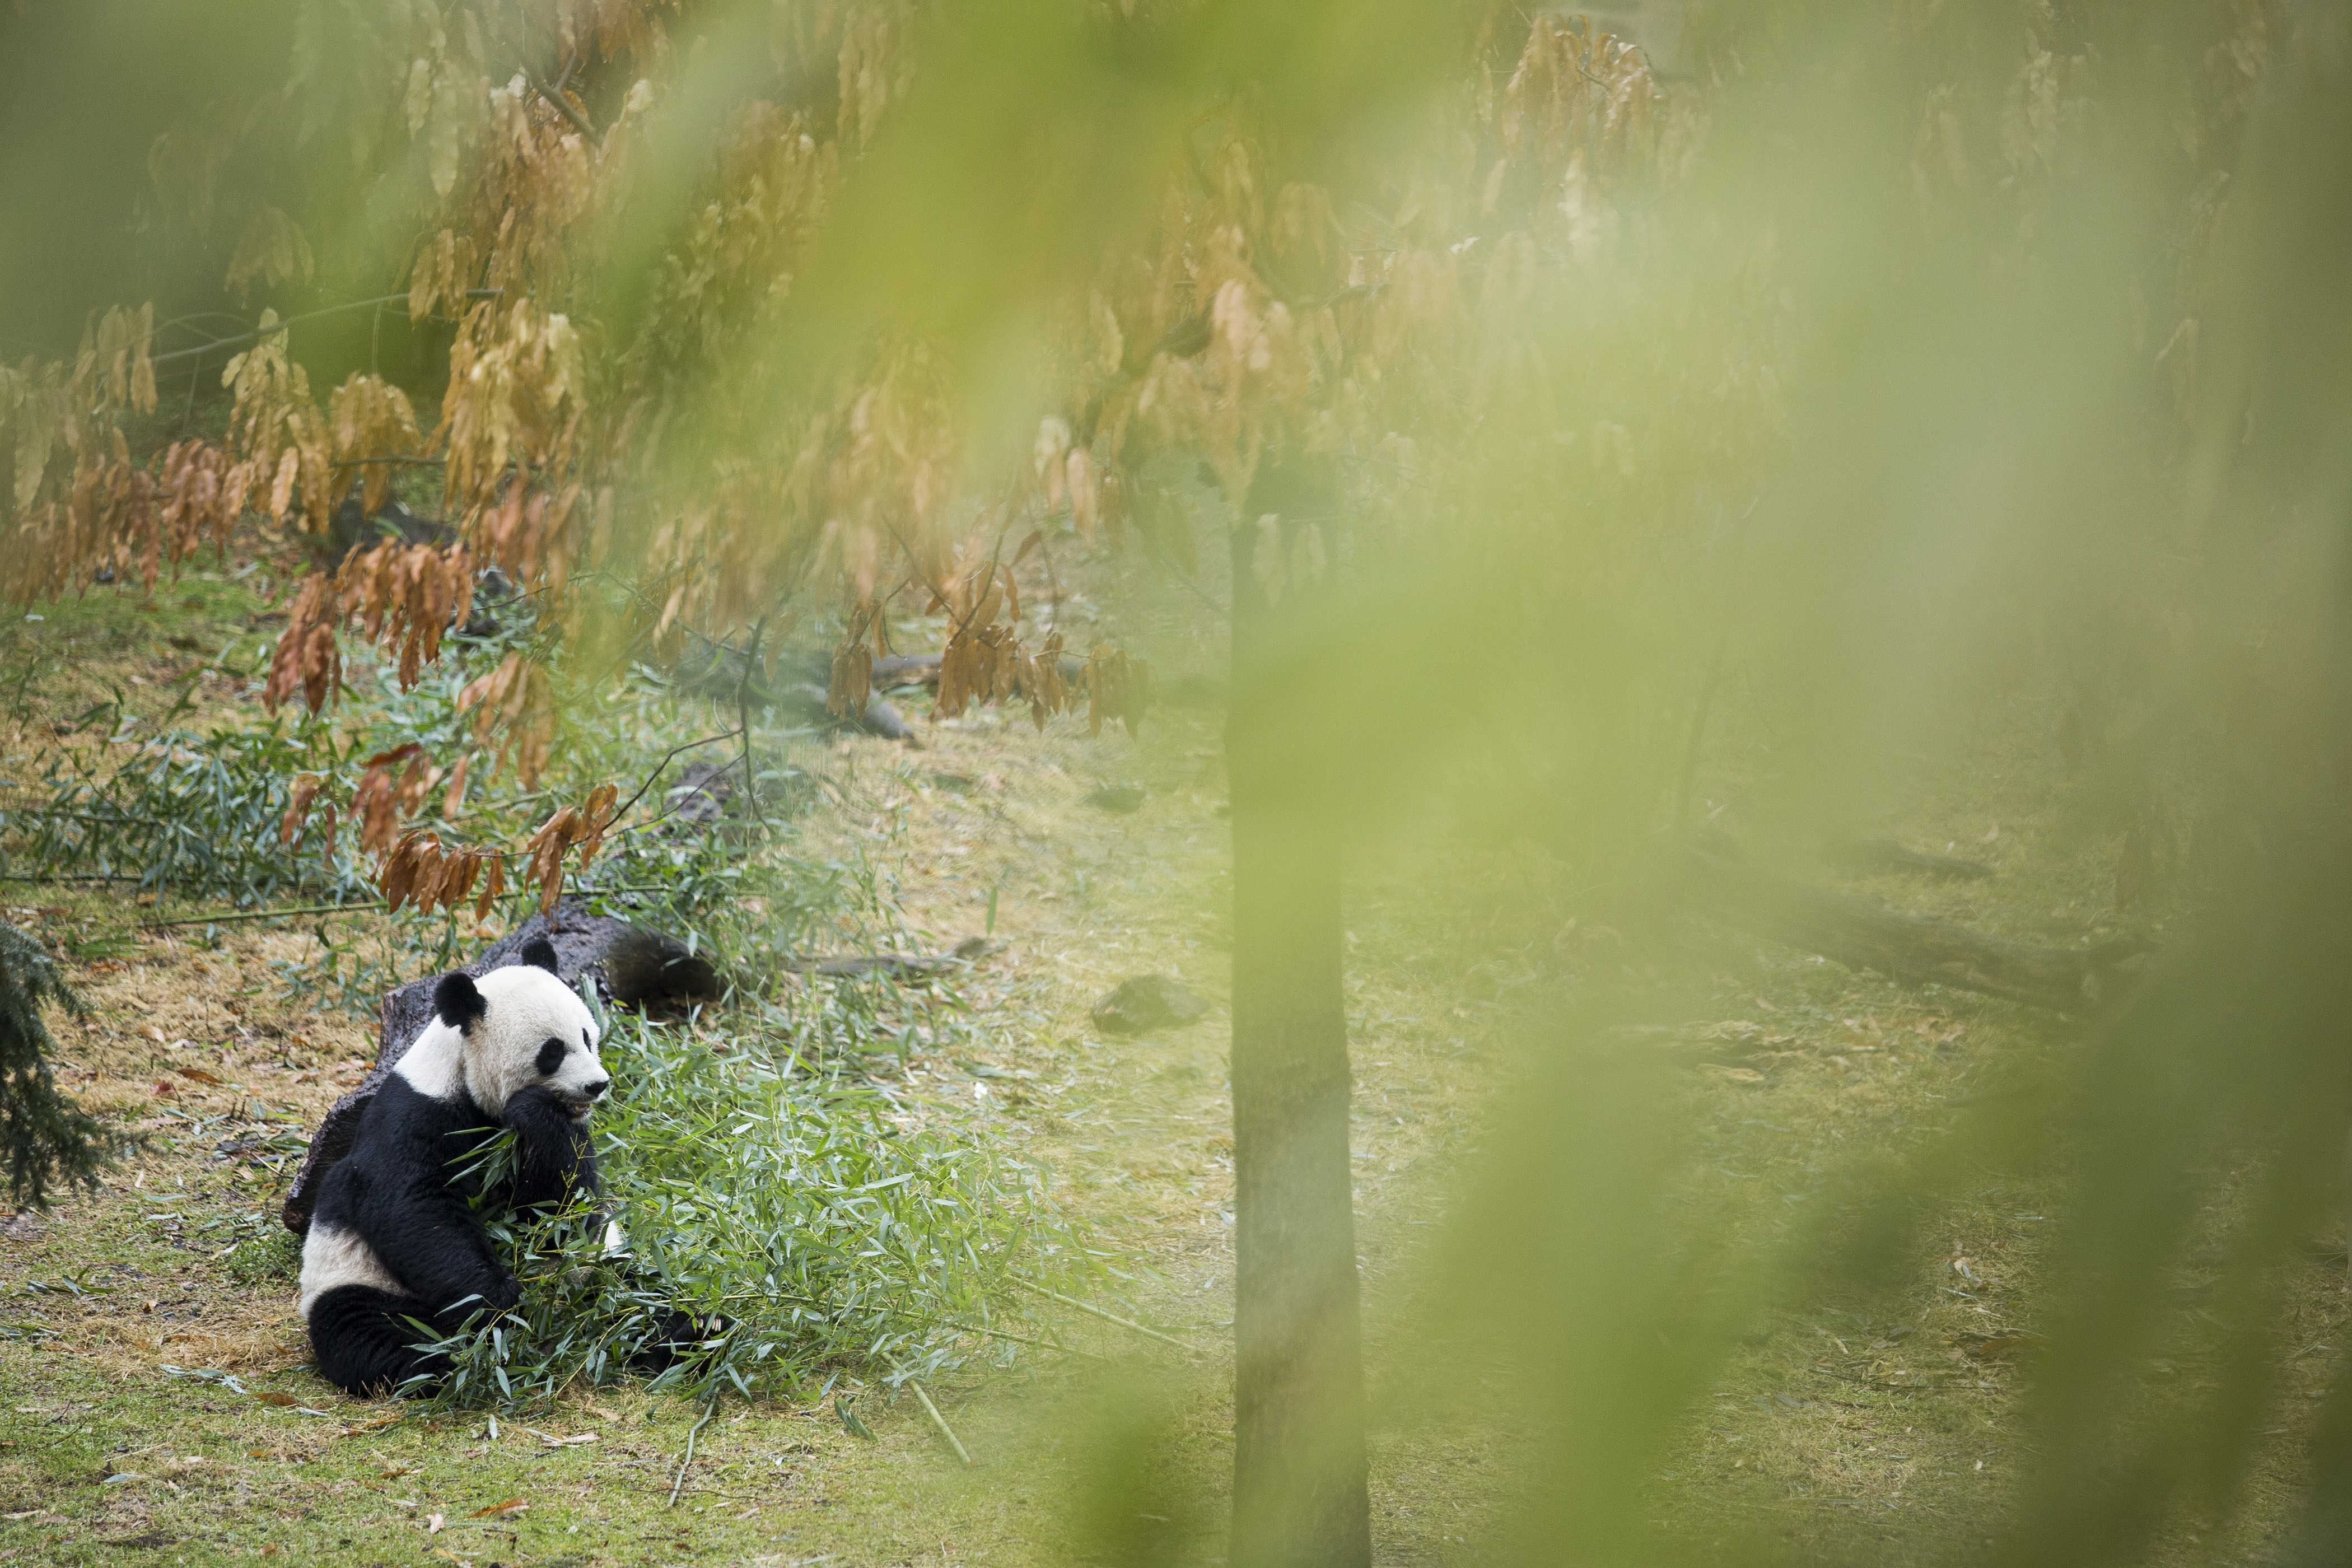 A giant panda munches on bamboo at the Smithsonian National Zoo in Washington, D.C. A genetic analysis of the bacteria living in the animal's gut has found it is best suited to digest meat. The results shocked scientists because bamboo has been the only food source for pandas for more than 2 million years.